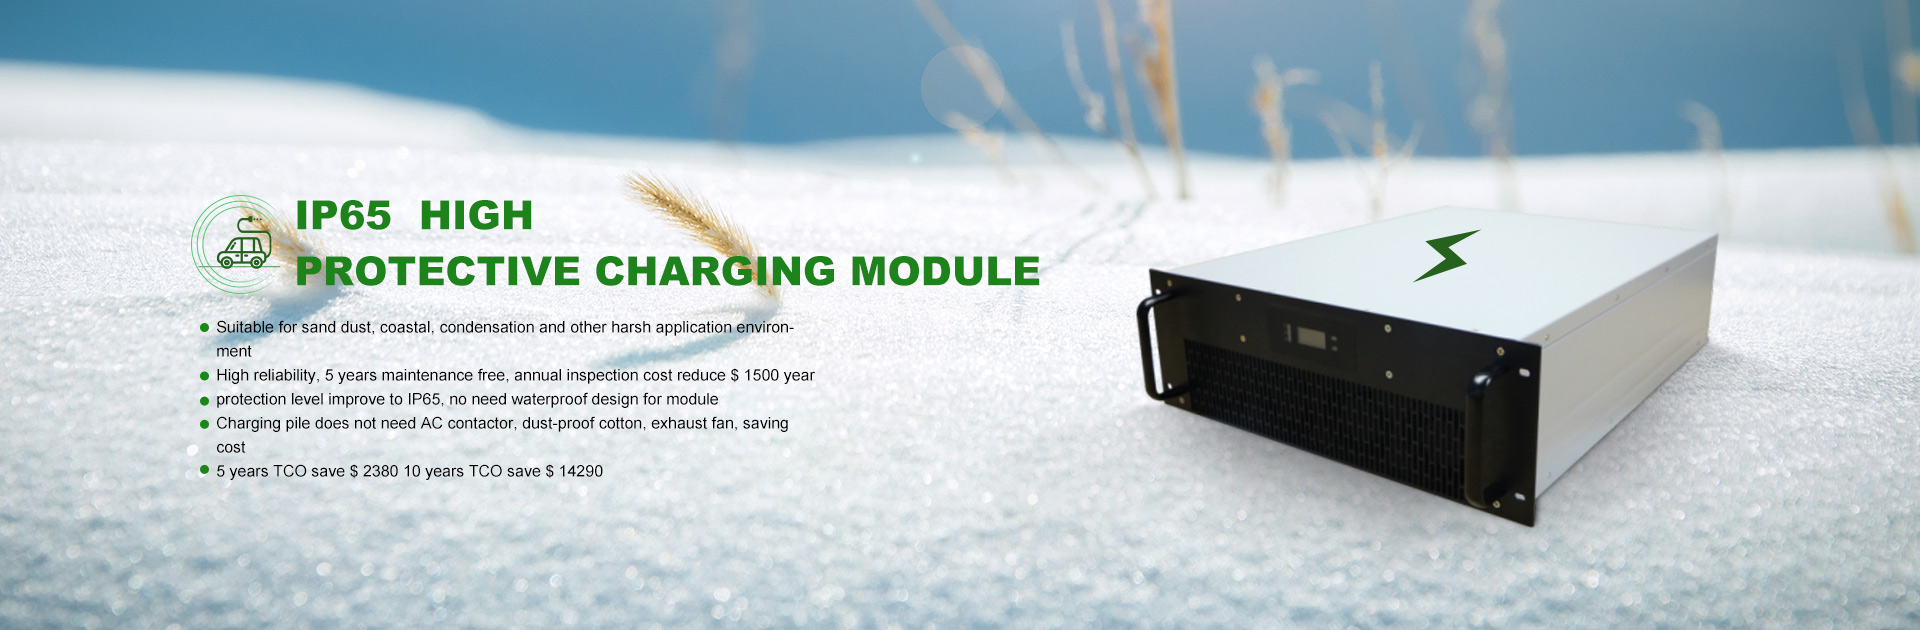 ip65-high-protective-charging-module-product